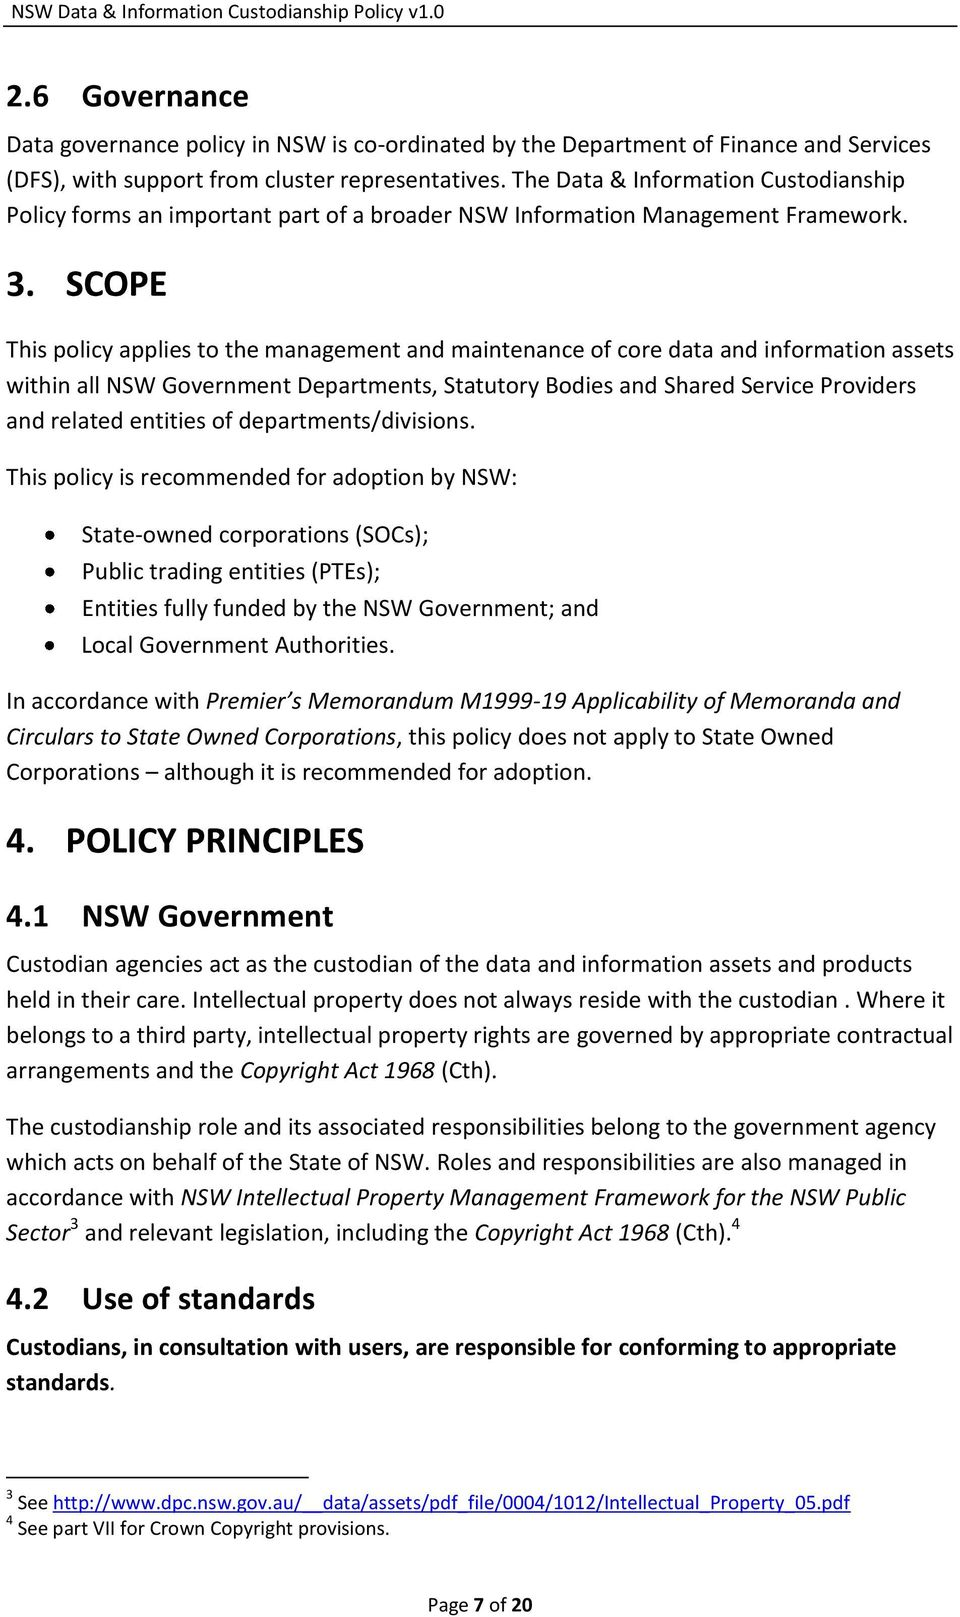 This policy applies to the management and maintenance of core data and information assets within all NSW Government Departments, Statutory Bodies and Shared Service Providers and related entities of